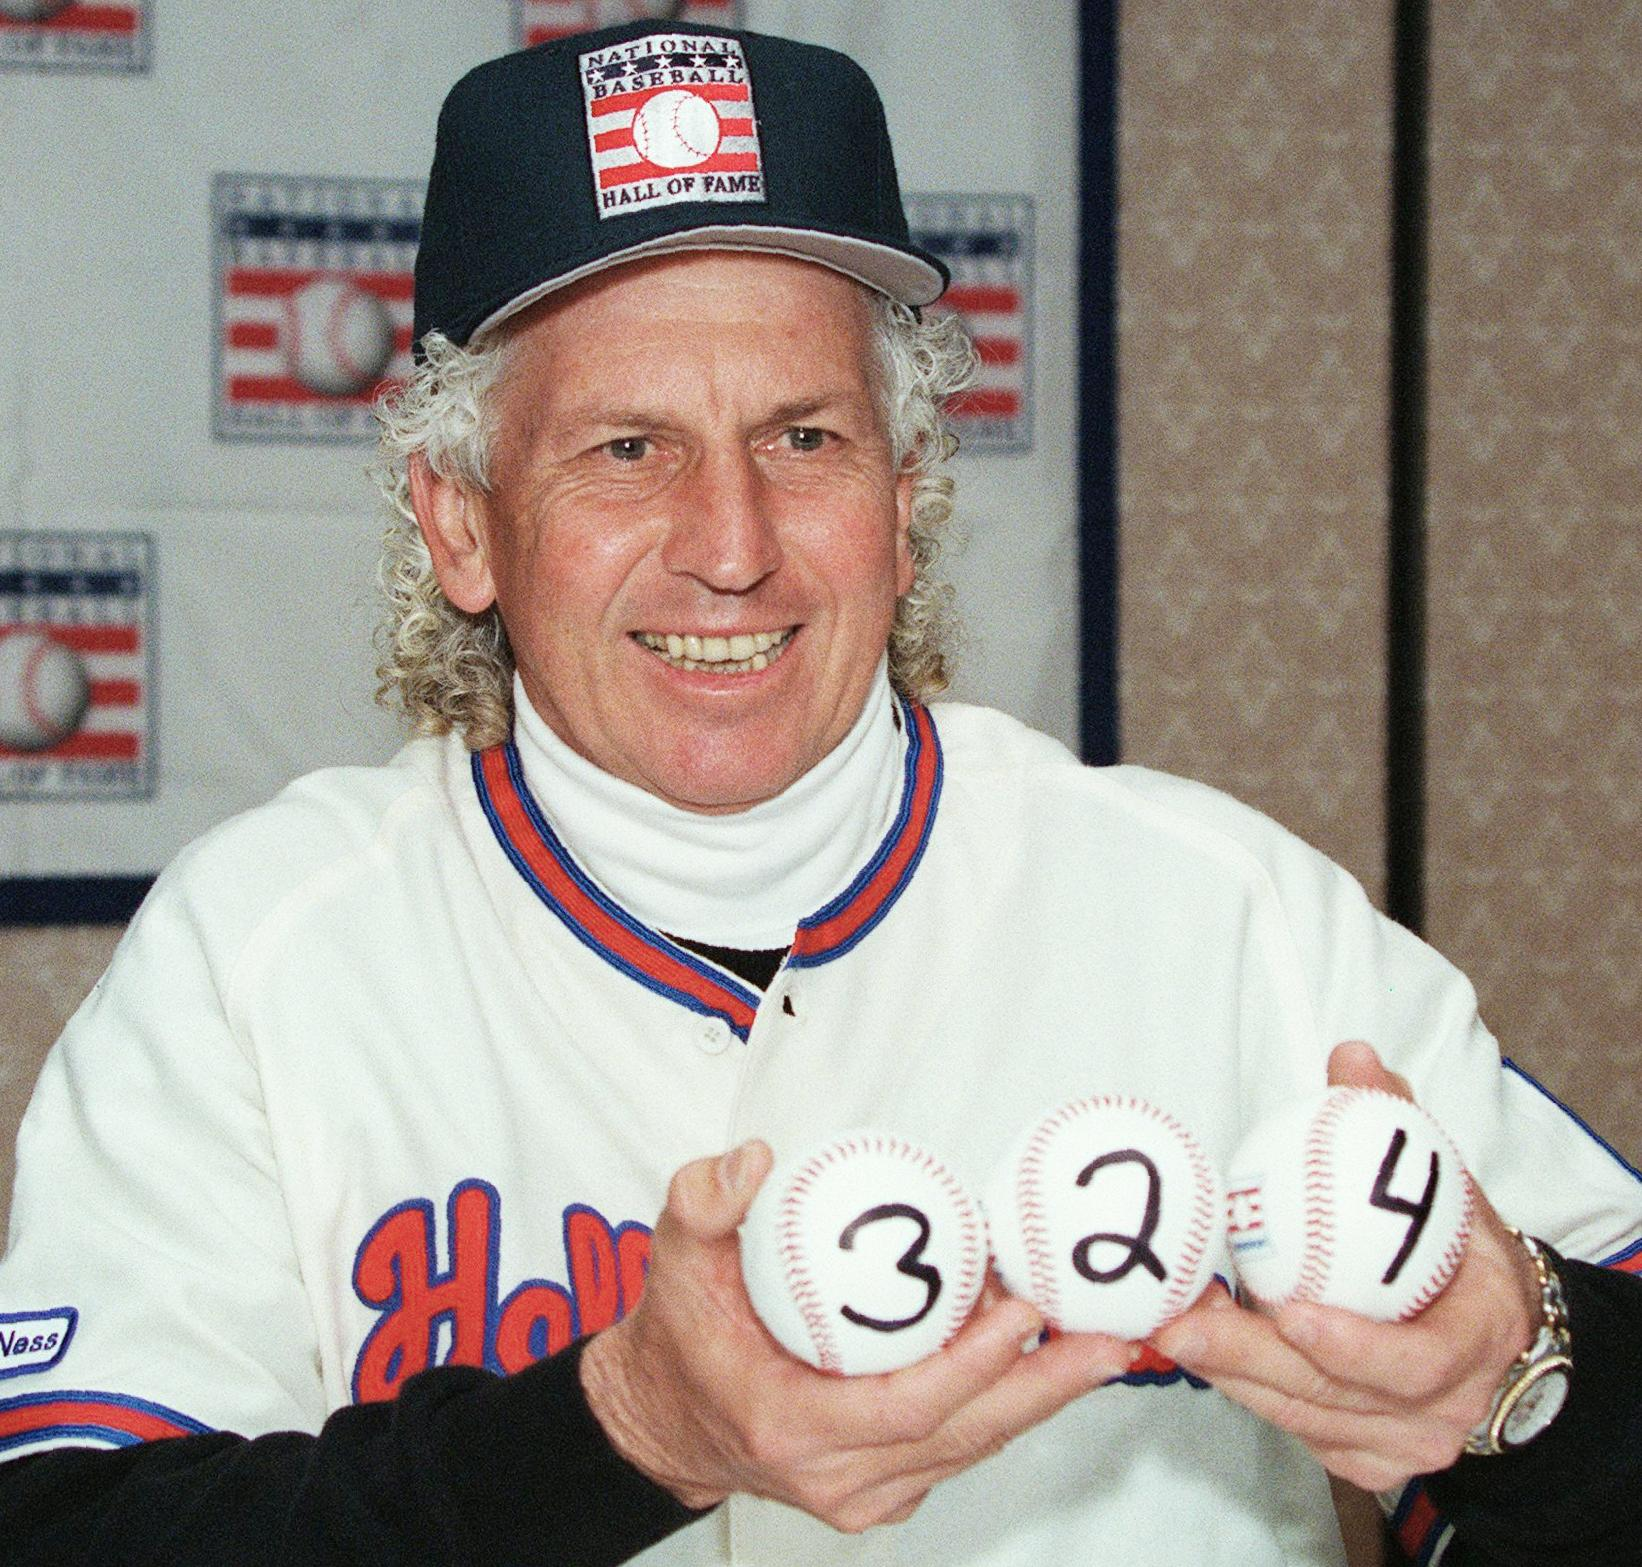 The late Don Sutton holding three baseballs marked to reflect the 324 games he won during his Hall of Fame career.